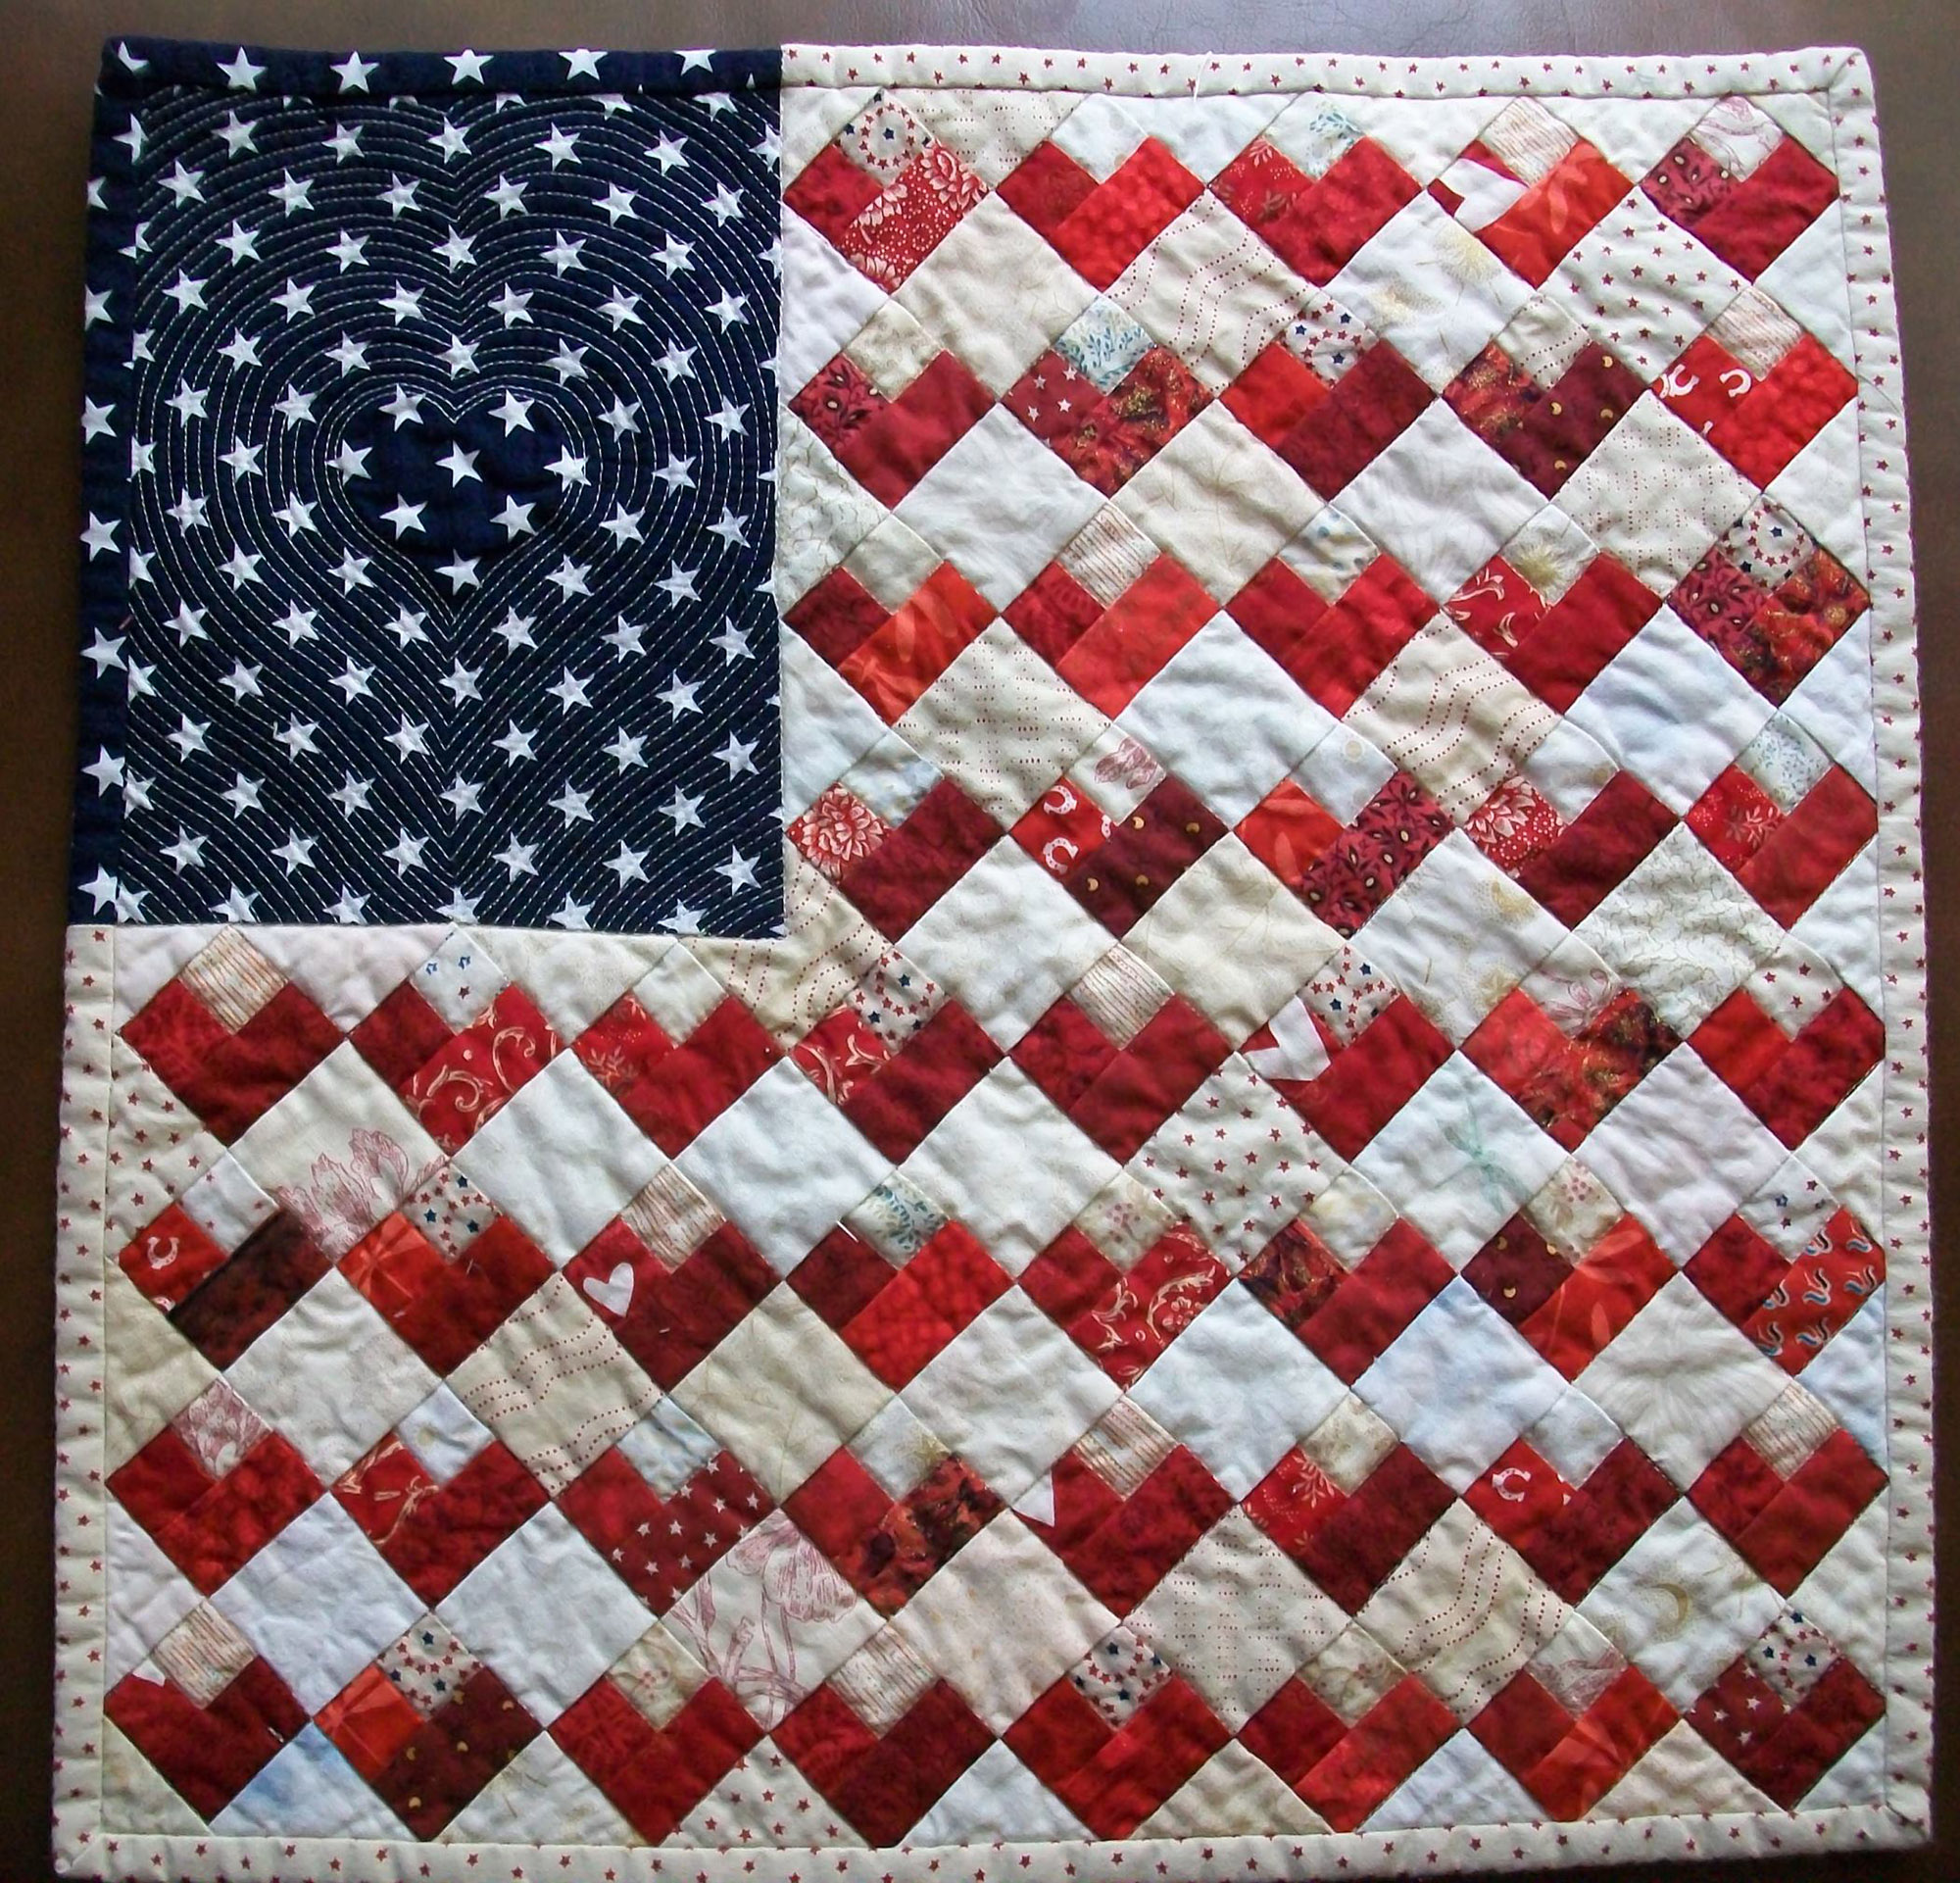 <em>Flag Quilt with Hearts</em>, Ramona Bates, Little Rock, AR